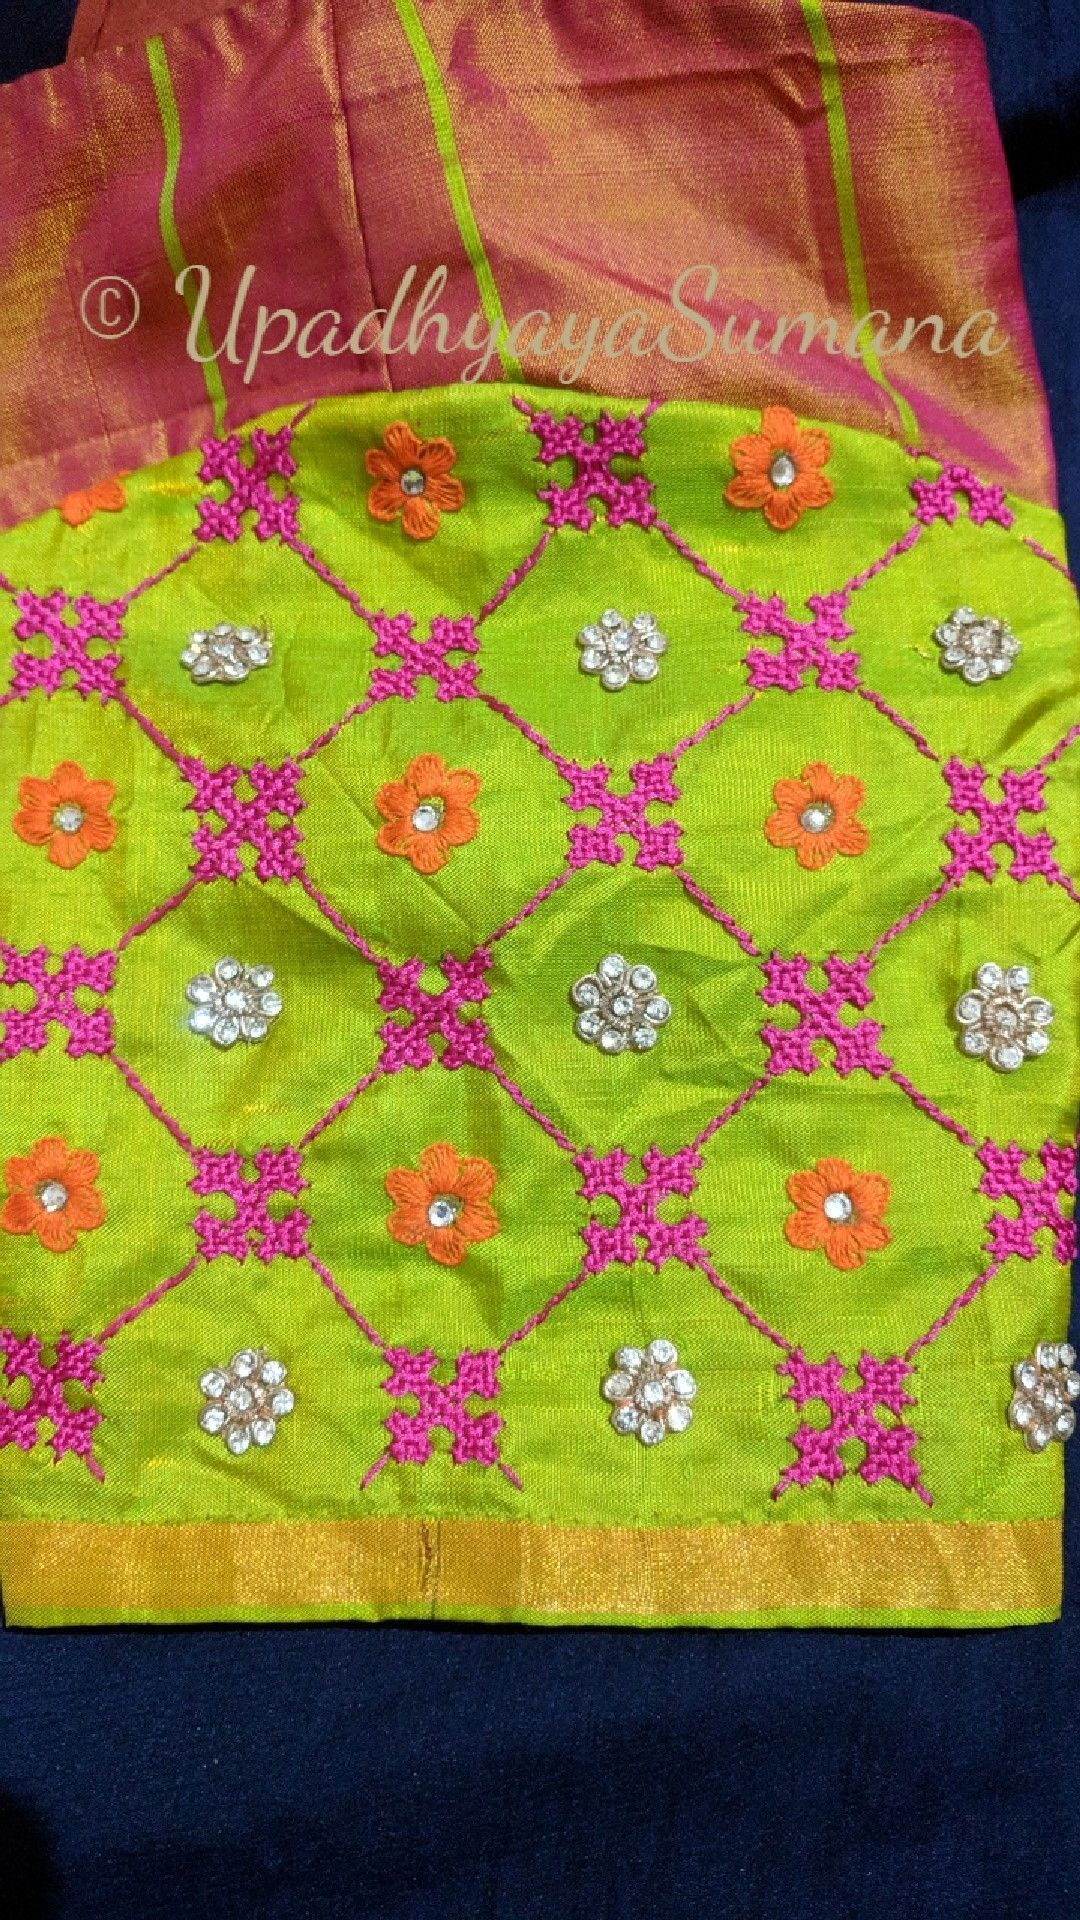 Kutch work pattern for saree blouse sleeves sindhi embroidery